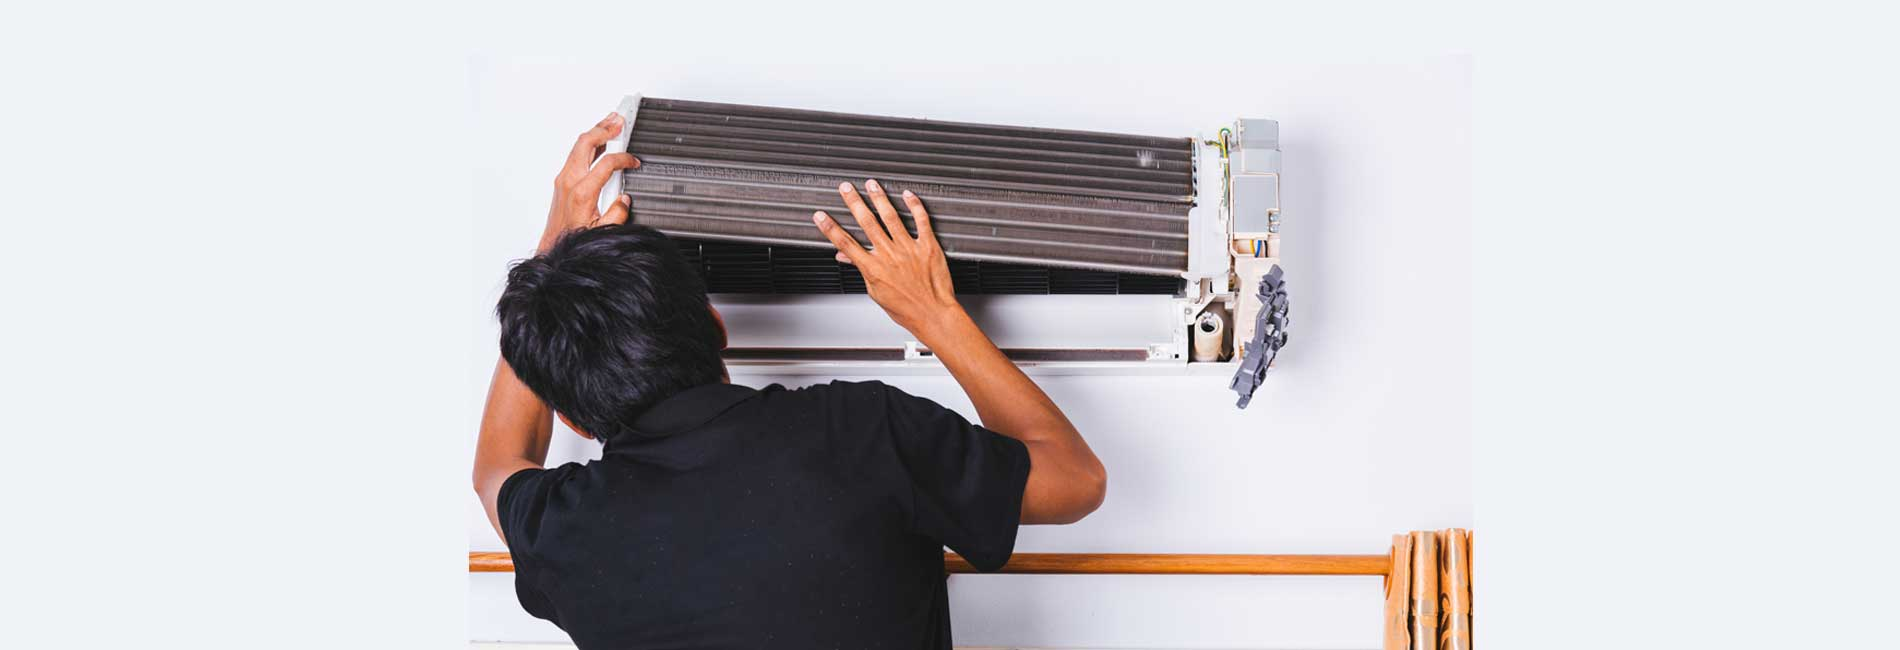 LG Split AC Uninstallation in Kattankulathur